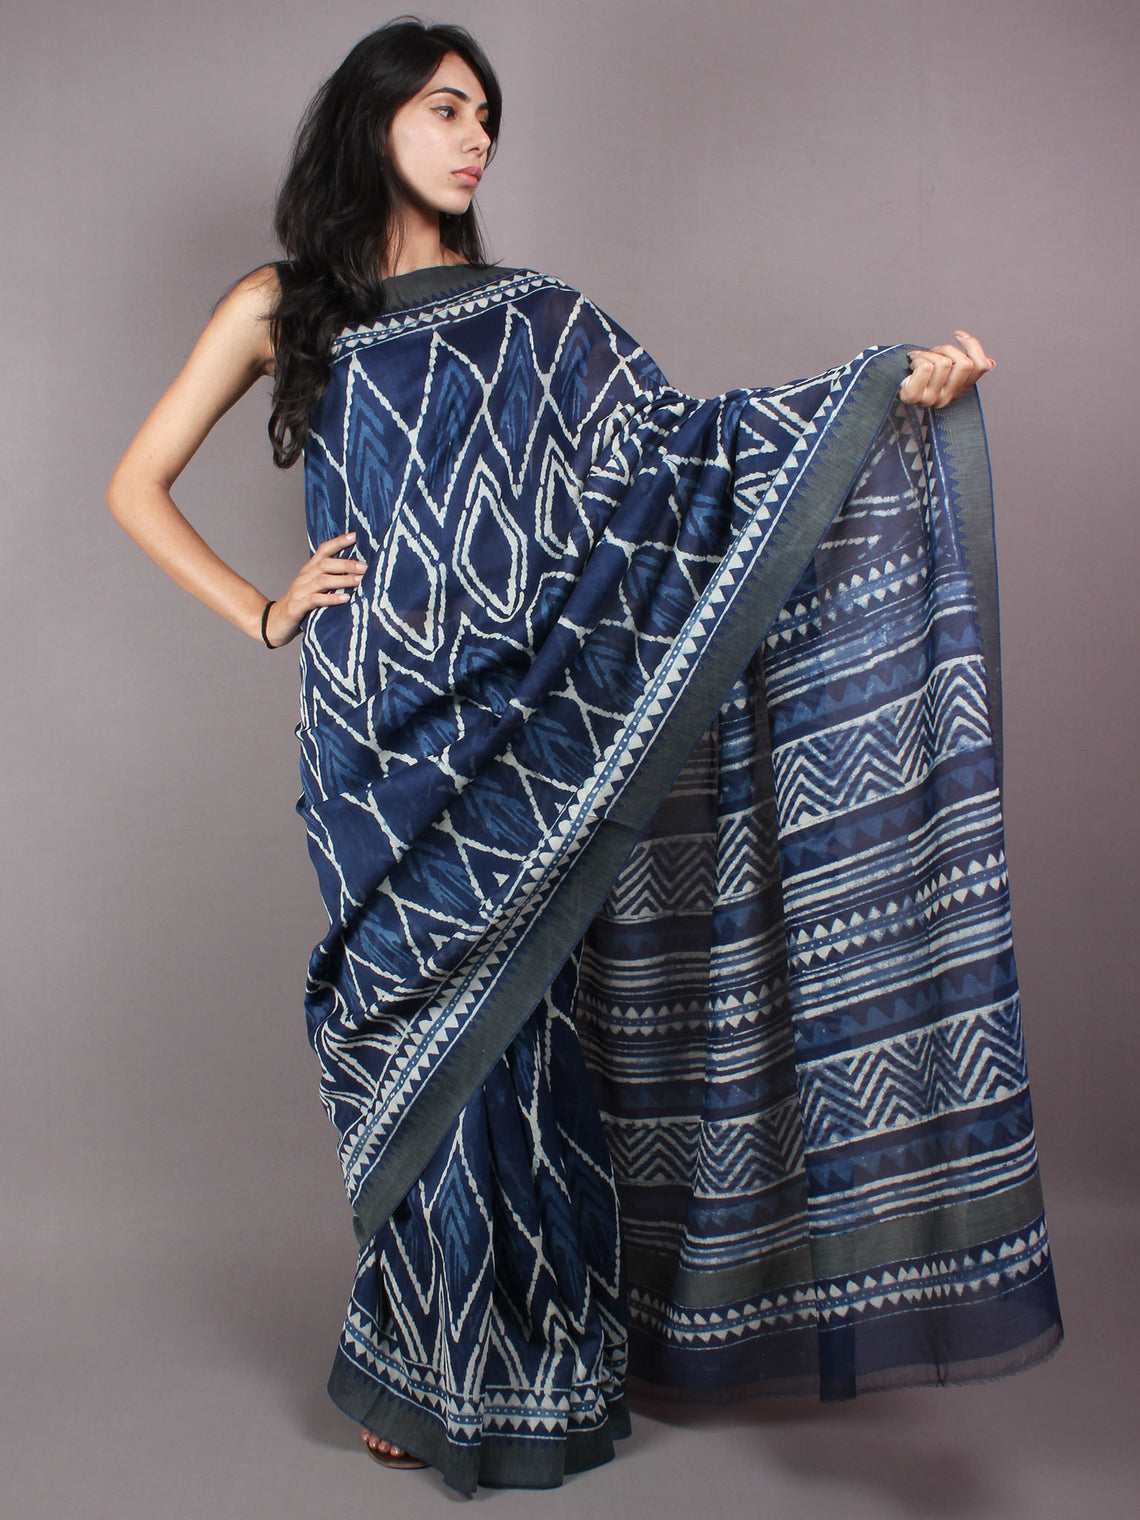 Indigo White Hand Block Printed in Natural Vegetable Colors Chanderi Saree With Geecha Border - S03170299